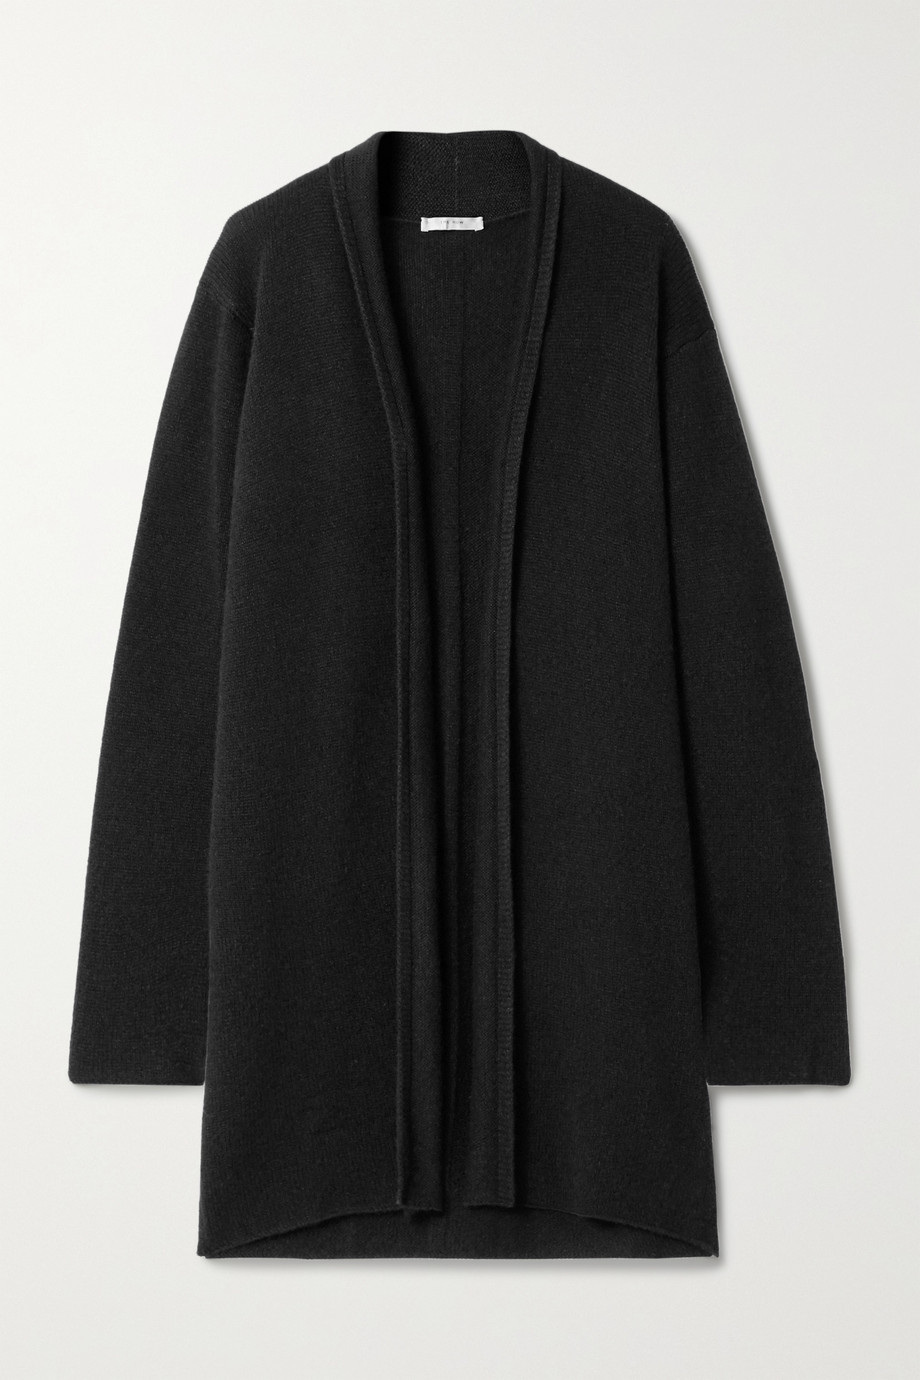 THE ROW Fulham cashmere cardigan